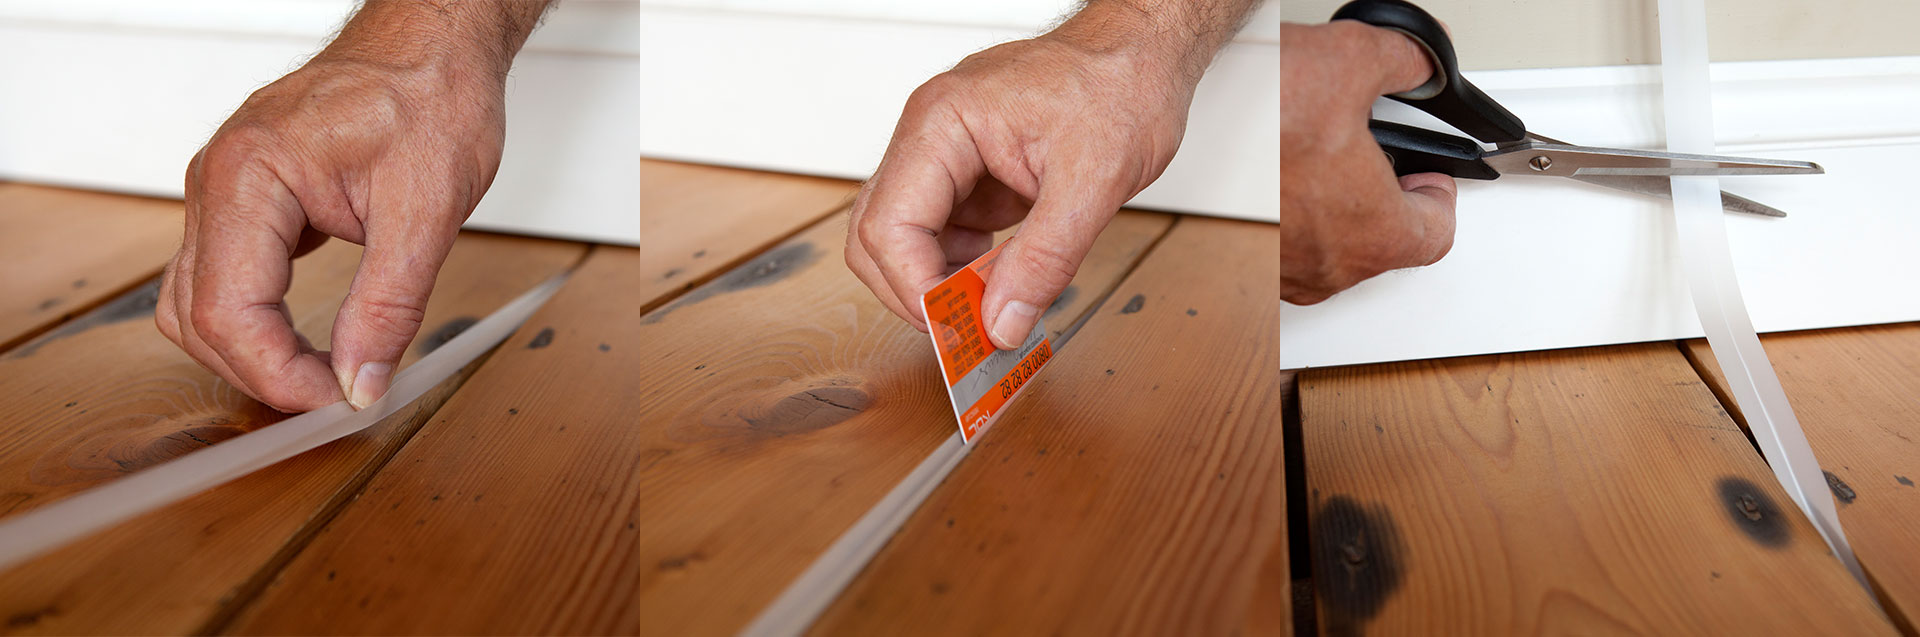 How To Stop Draughty Floors And Enjoy A More Comfortable Home It S Simple With Stopgap